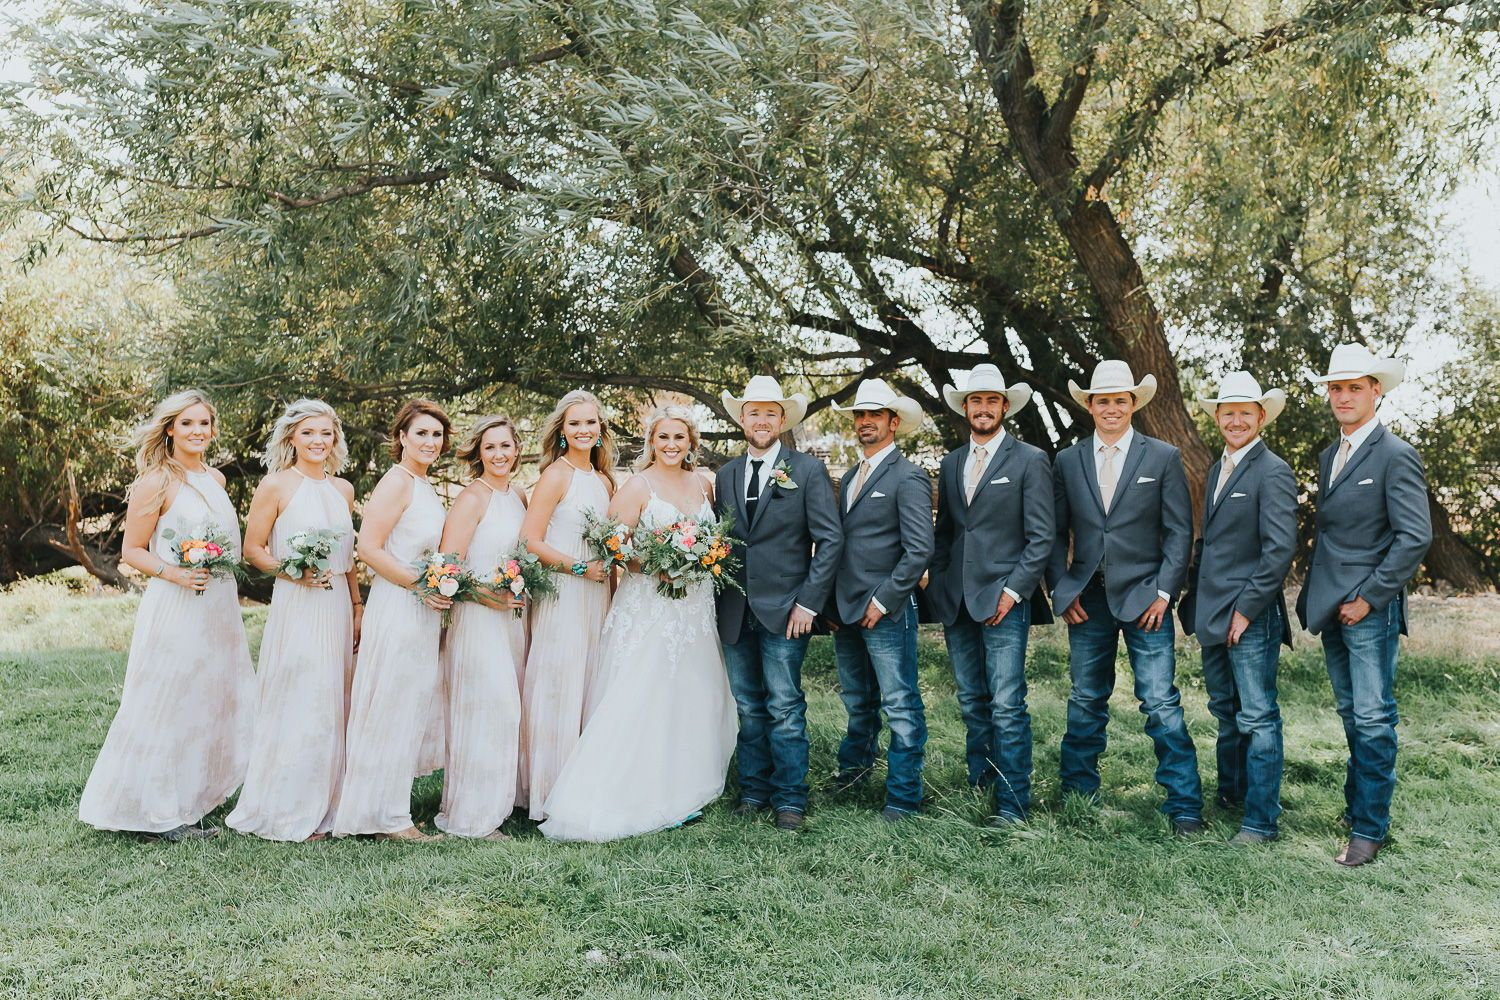 Bridal Party Photos Bridesmaids And Groomsmen Cowboy Wedding Country Wedding Country Wedding Photos Country Wedding Groomsmen Rustic Wedding Groomsmen